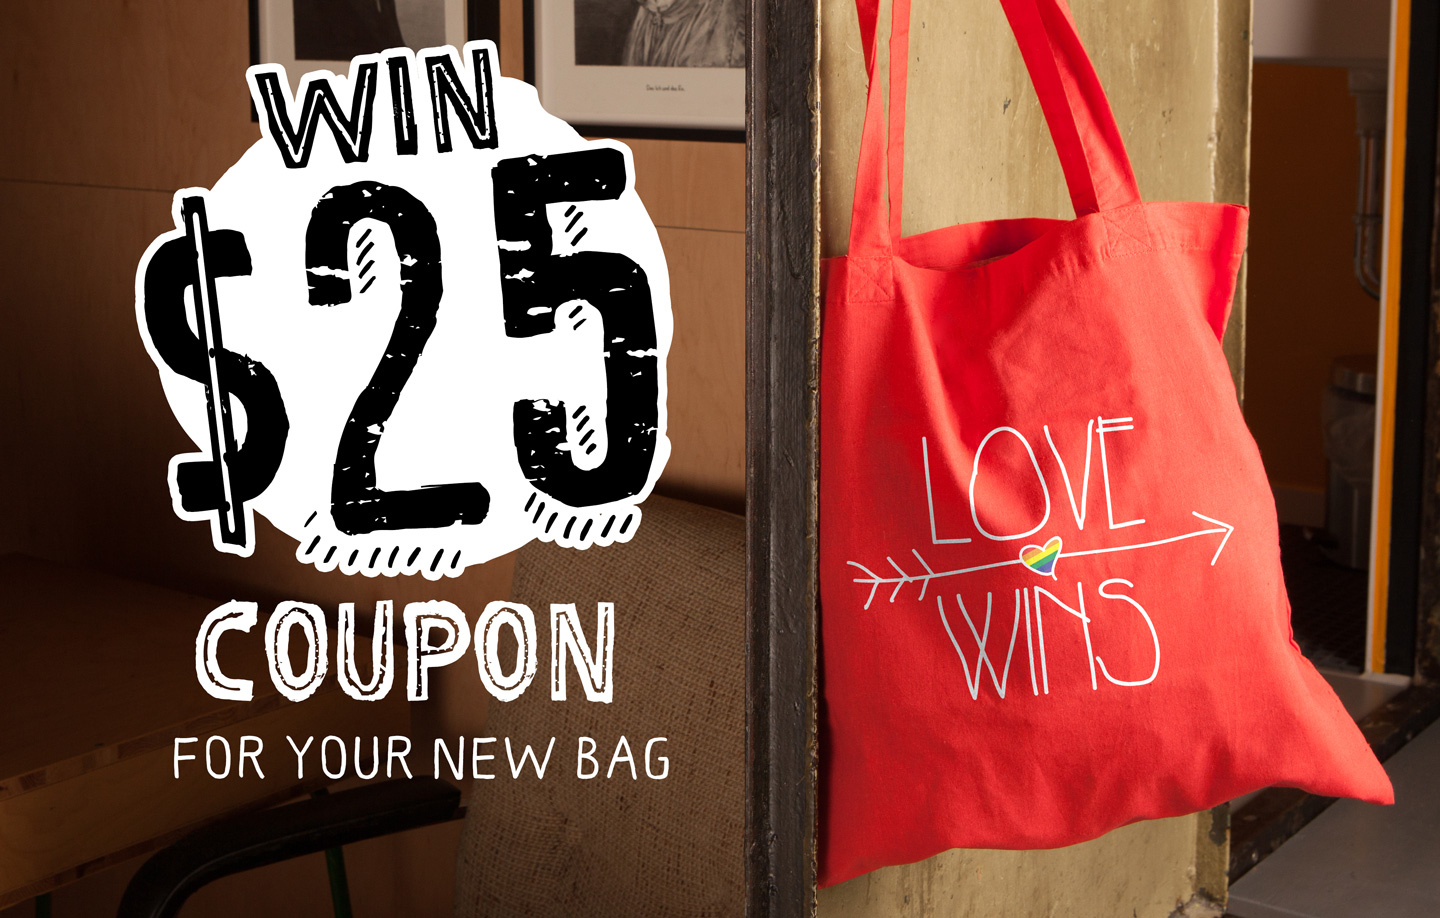 What's on Your Bag? Print Personalized Bags with Spreadshirt